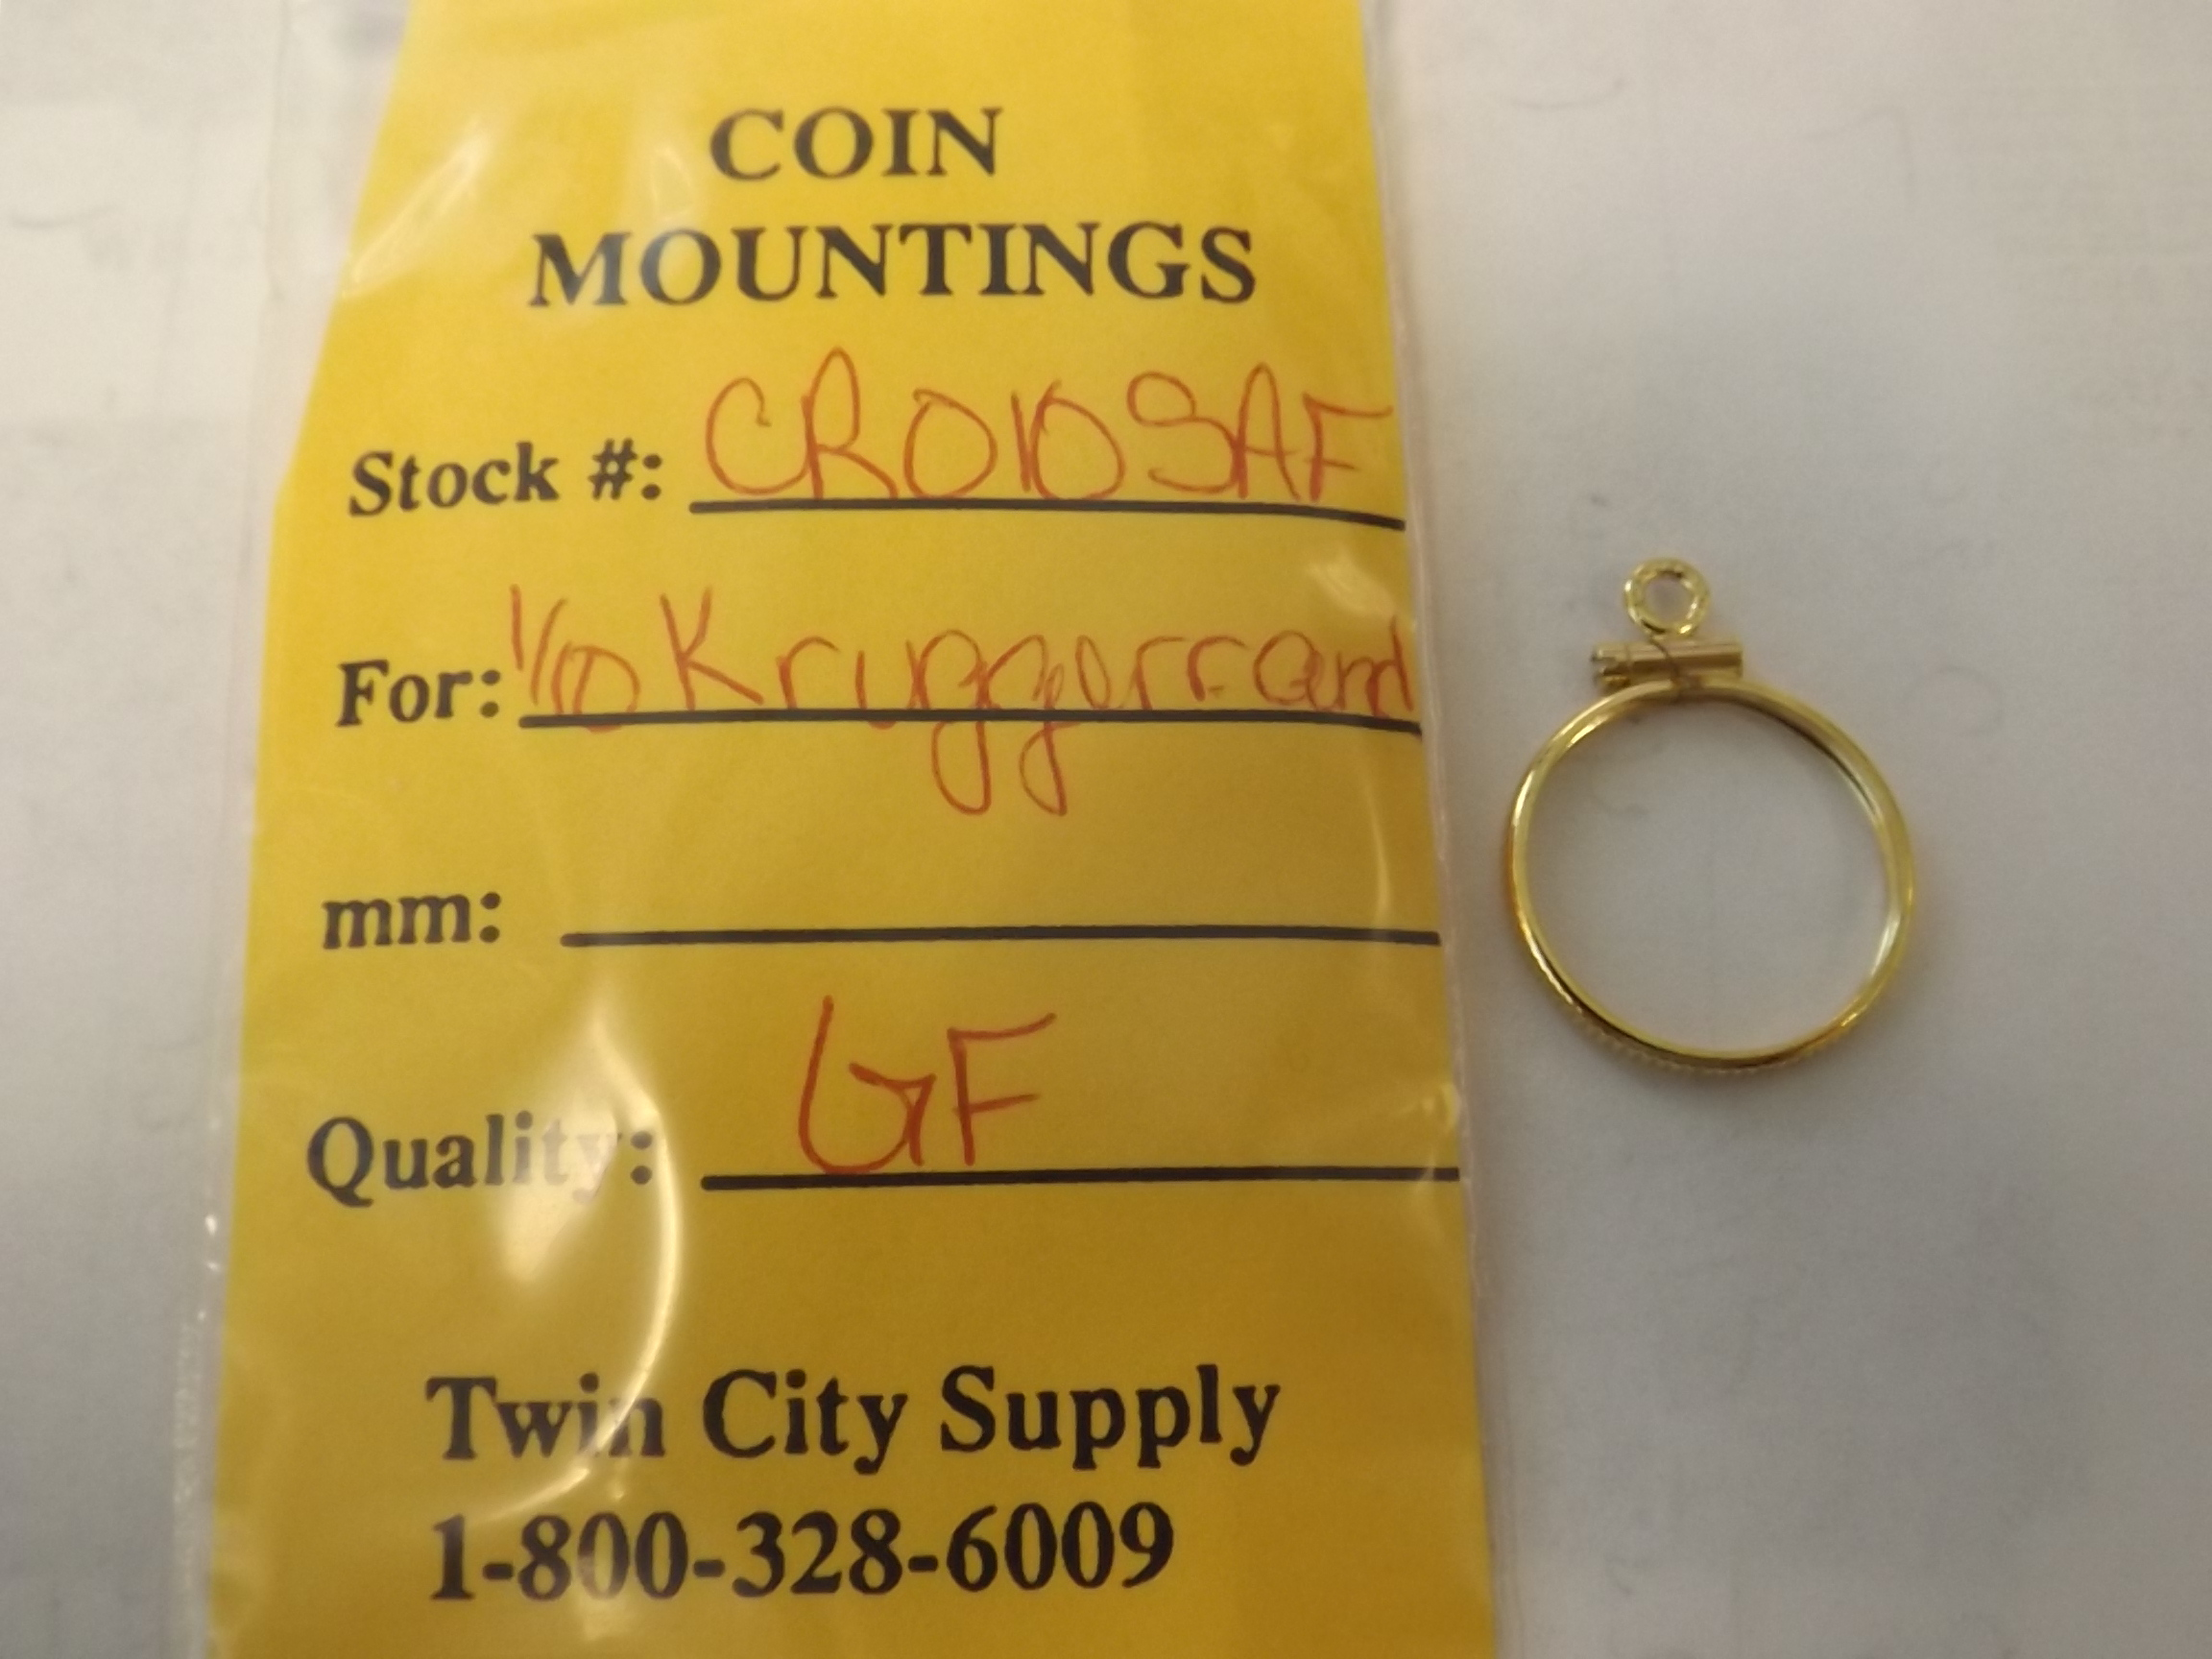 CR010SAF South African Coin Mounting-- 1/10 Ounce Krugerrand-Yellow Gold Filled Closeout!